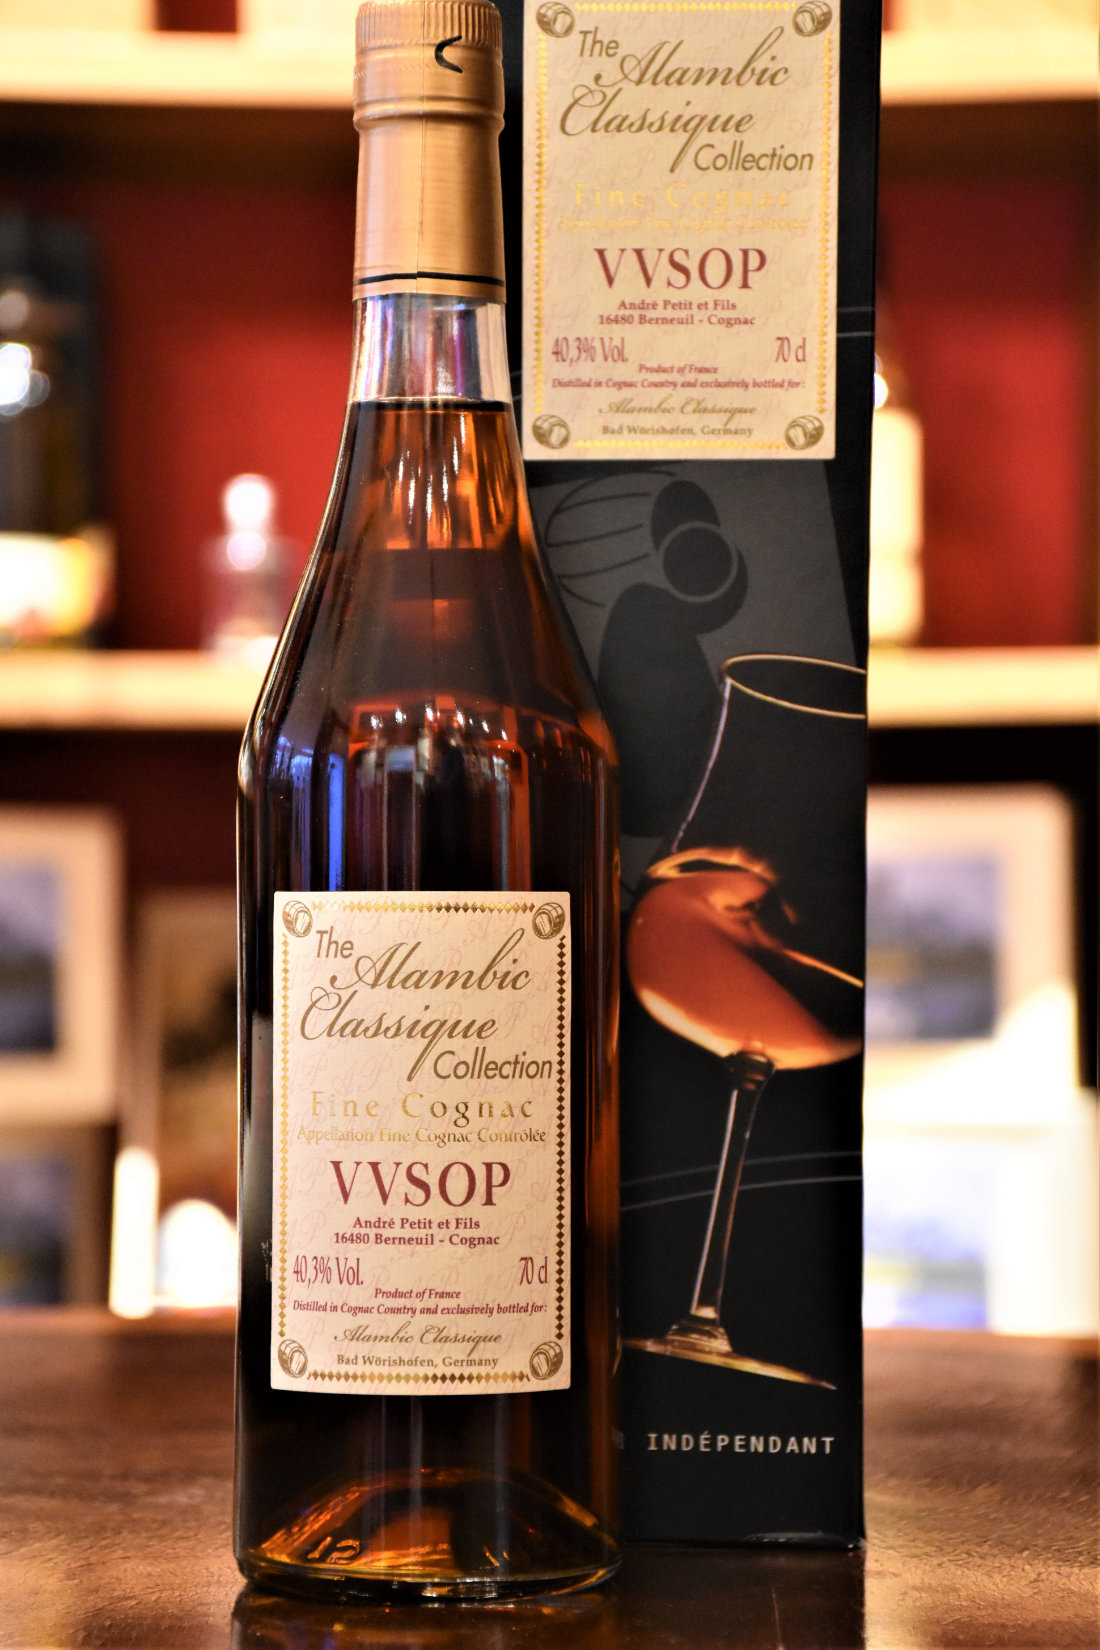 Andre Petit VVSOP - Alambic Classic Collection, 40,3% Alc.Vol.